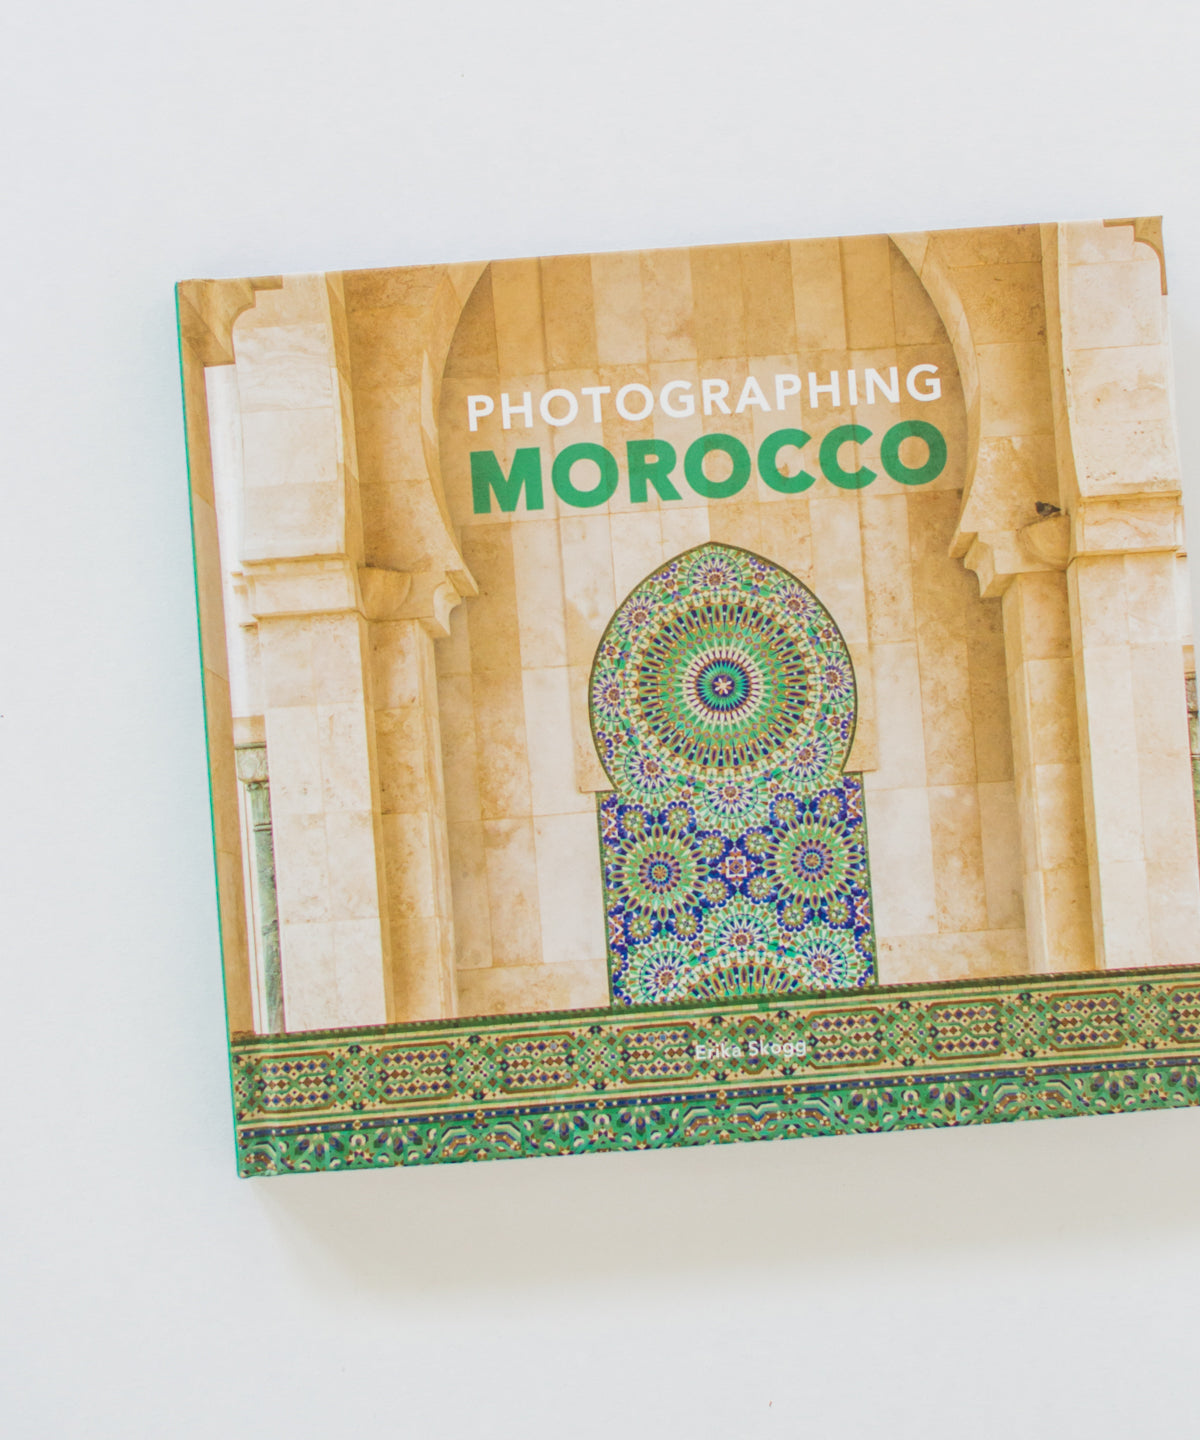 Photographing Morocco